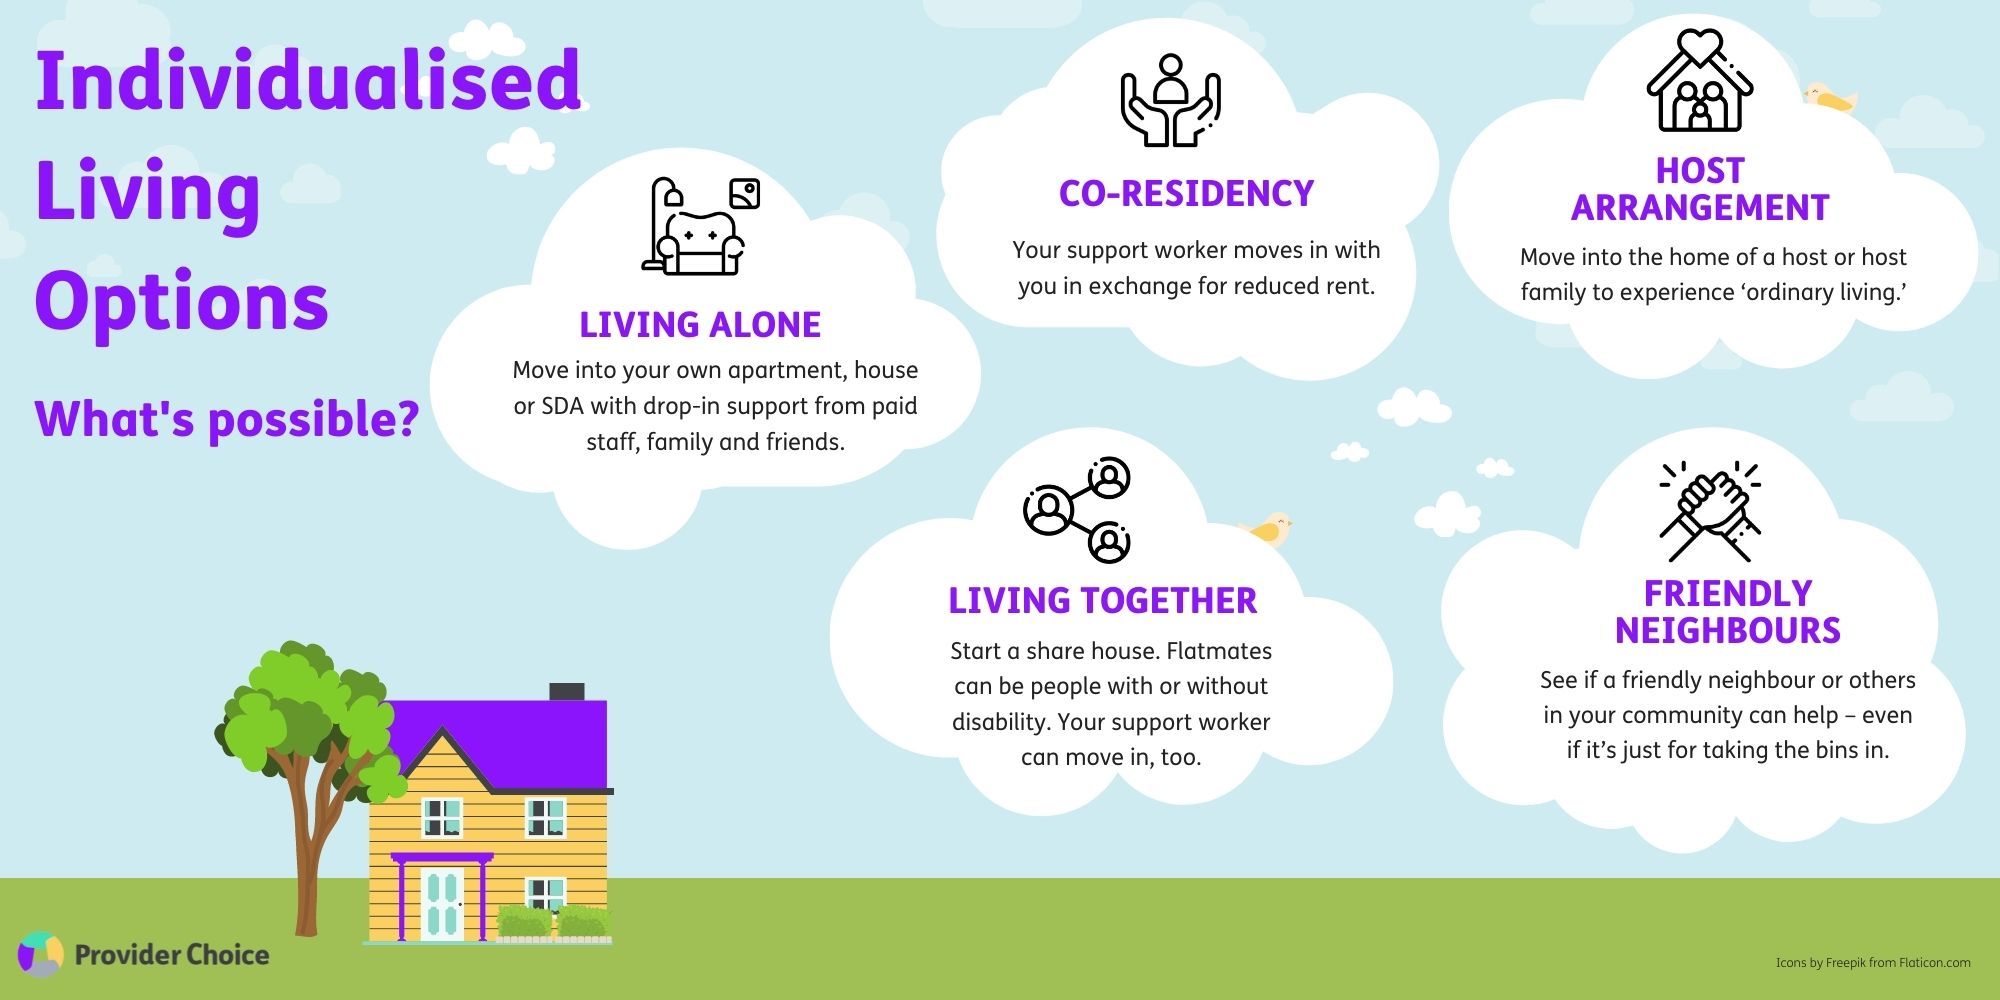 Individualised Living Options. What's possible?